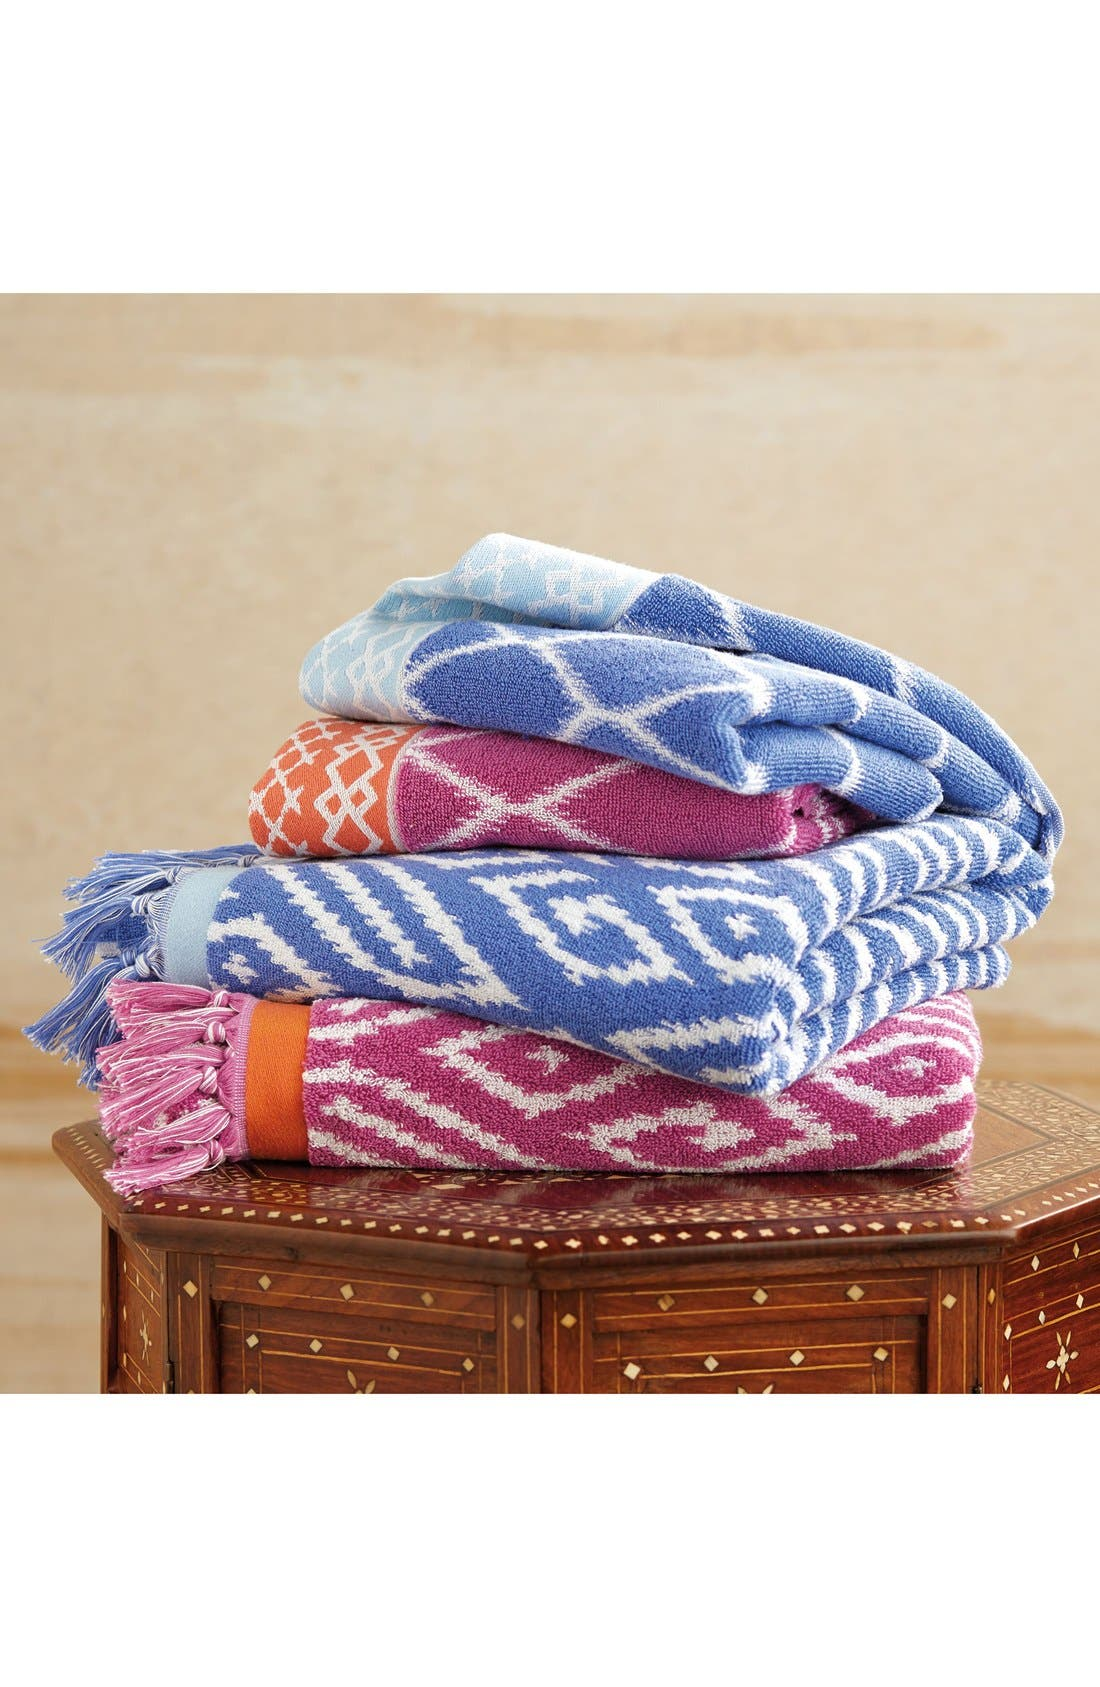 Alternate Image 2  - John Robshaw 'Kalasin' Turkish Cotton Bath Towel